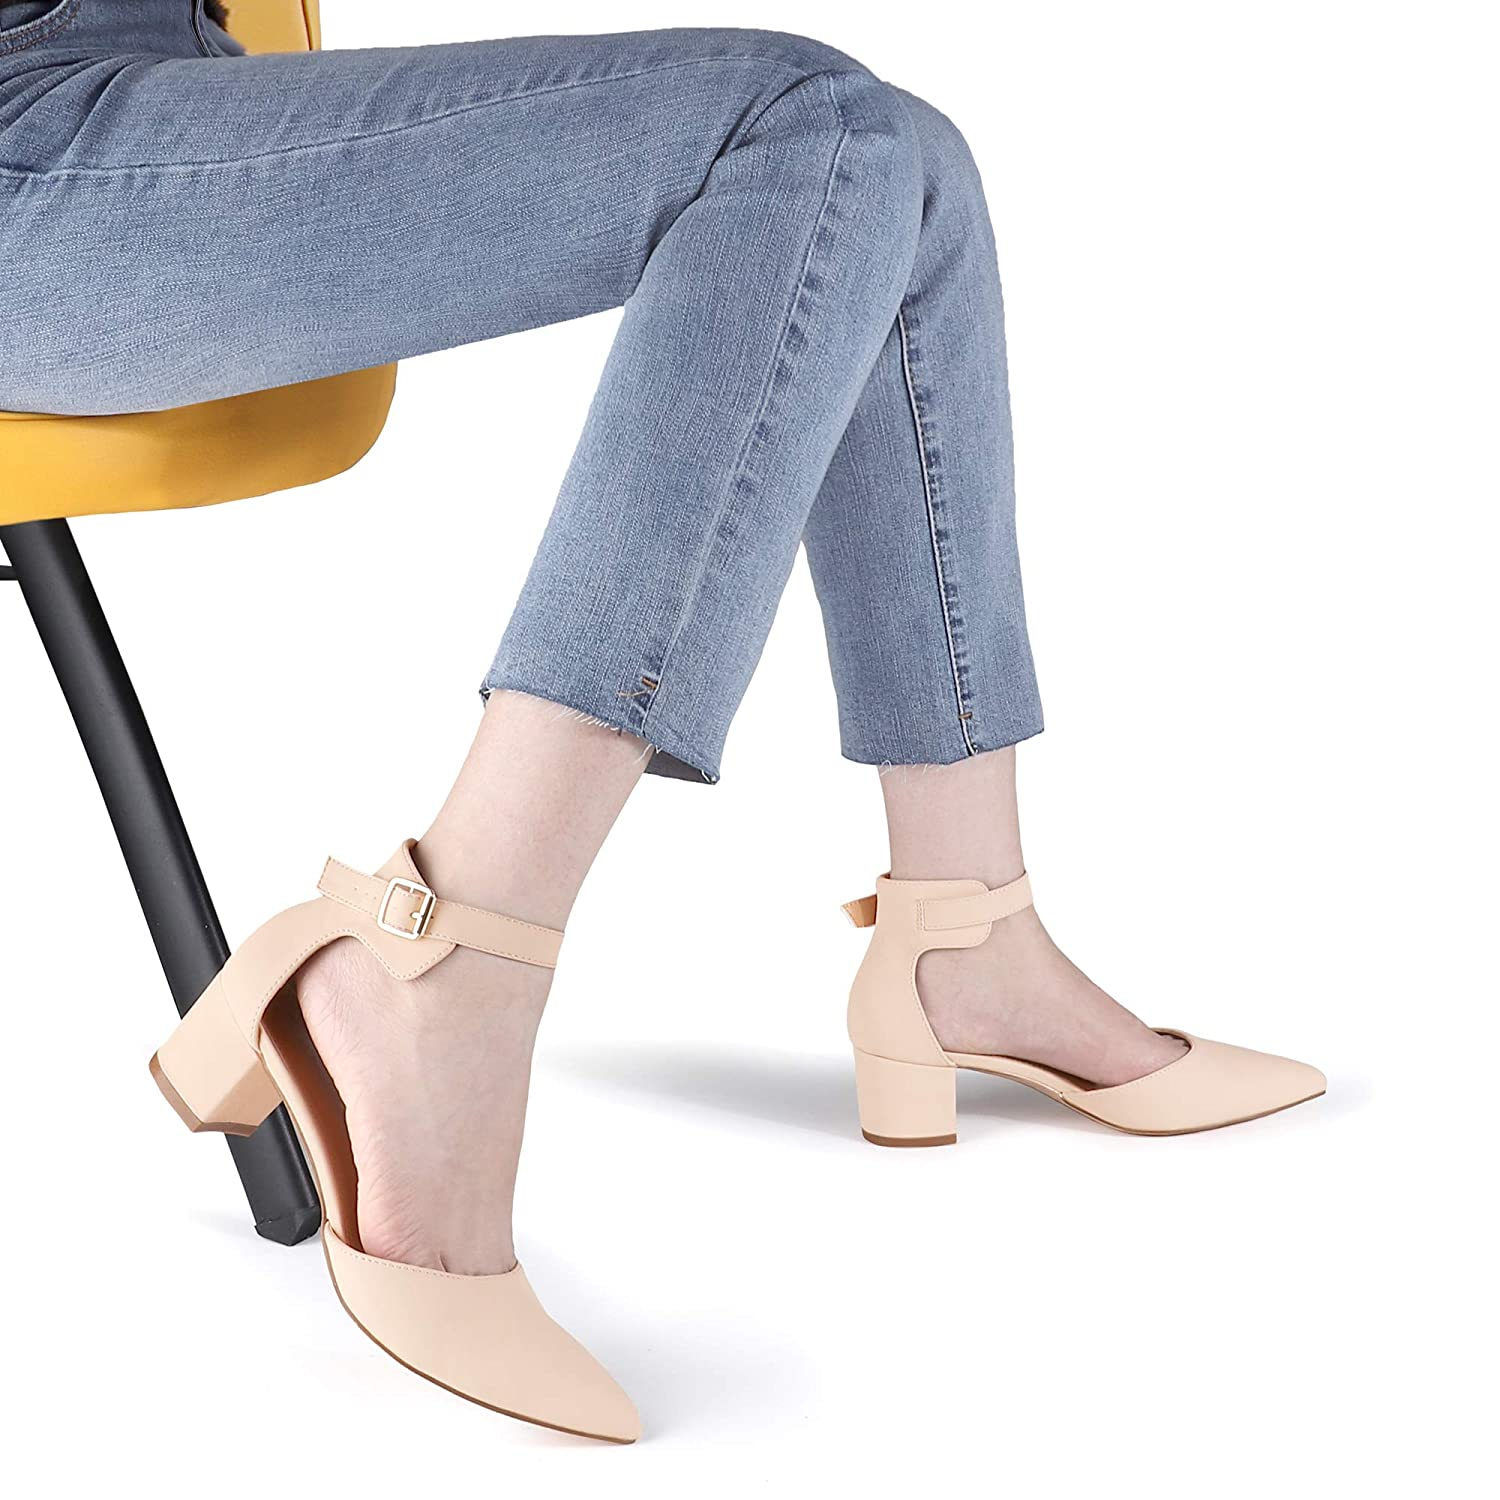 SHOWHOW Womens Low Block Heel Closed Pointed Toe DOrsay Heeled Pumps Ankle Strap Dress Wedding Sandals Shoes